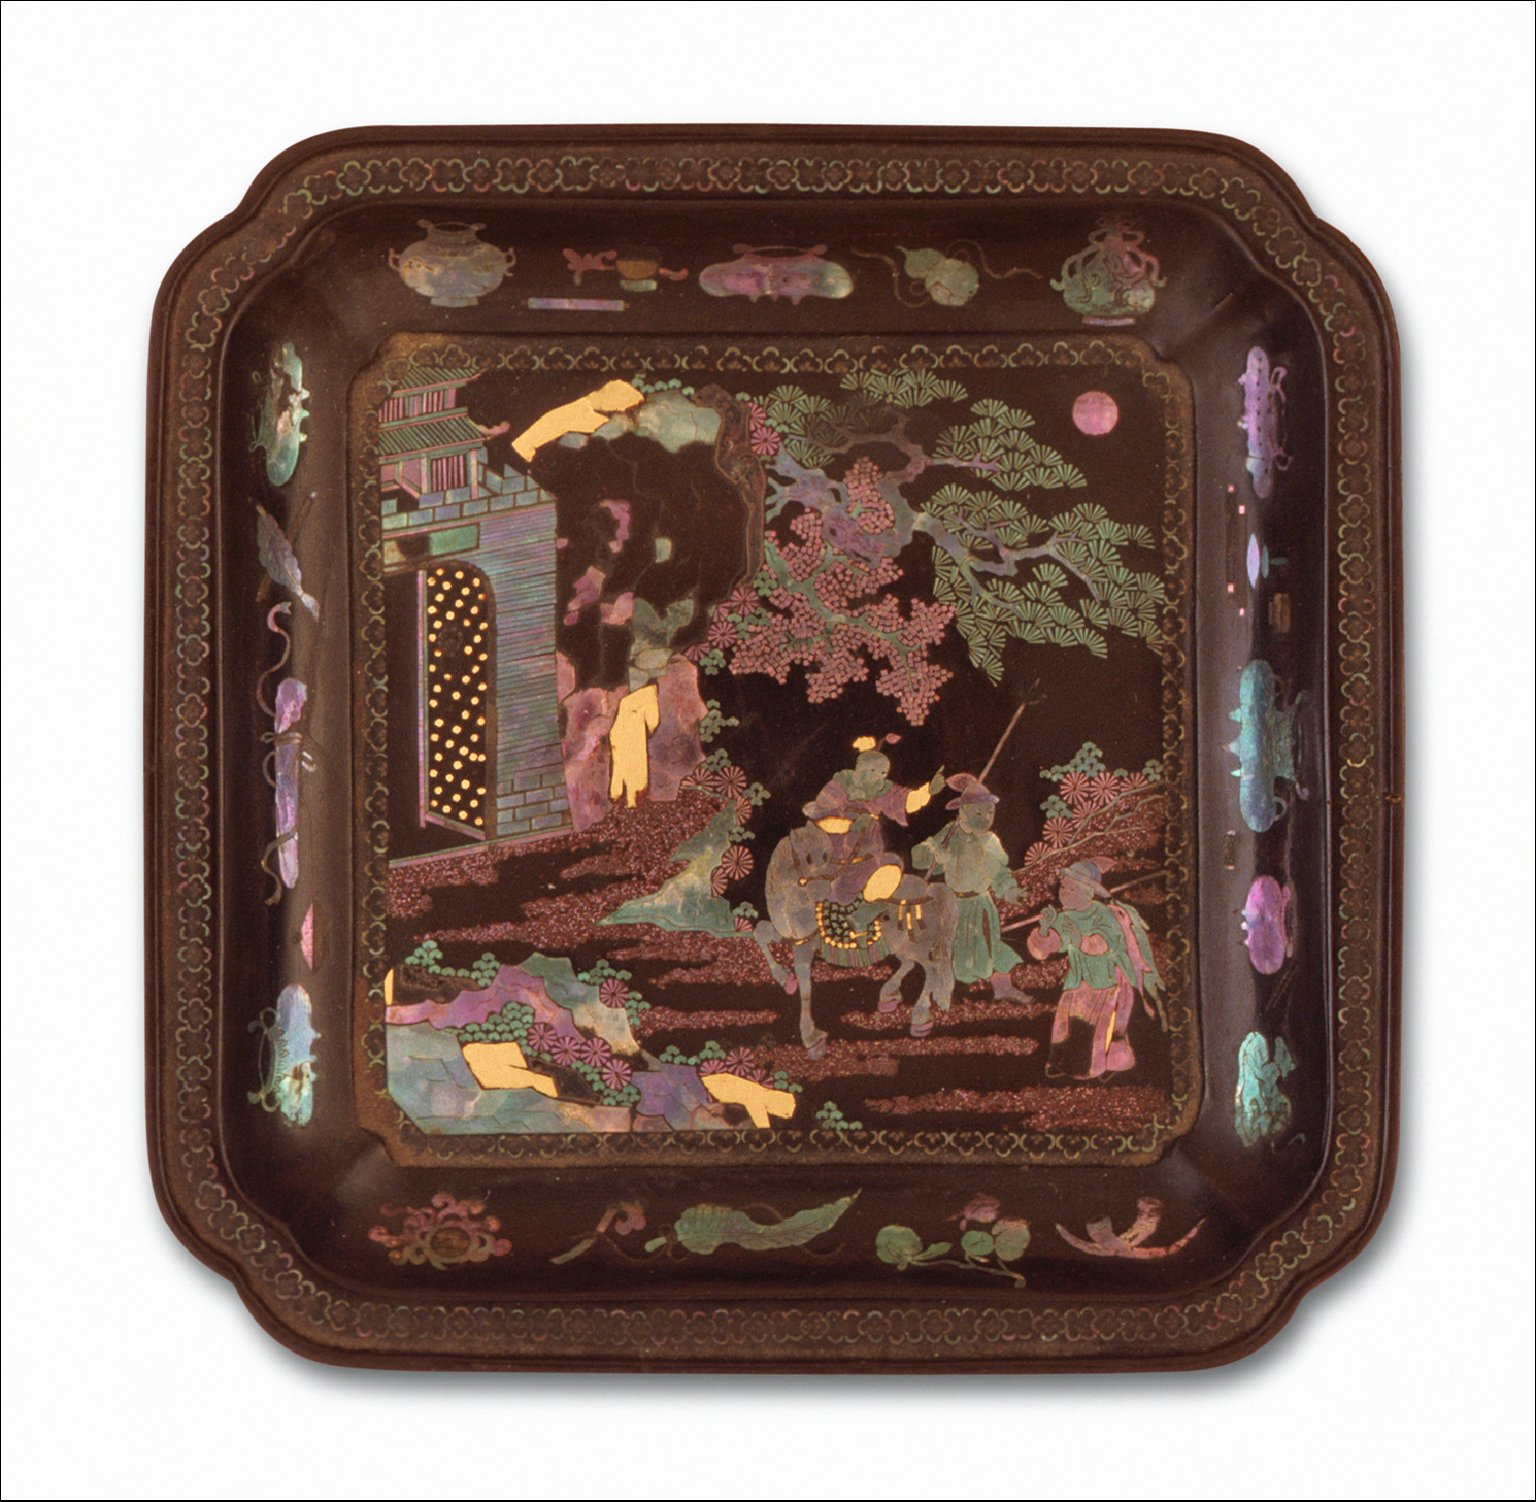 Square Dish (Die) with Figure on Horse